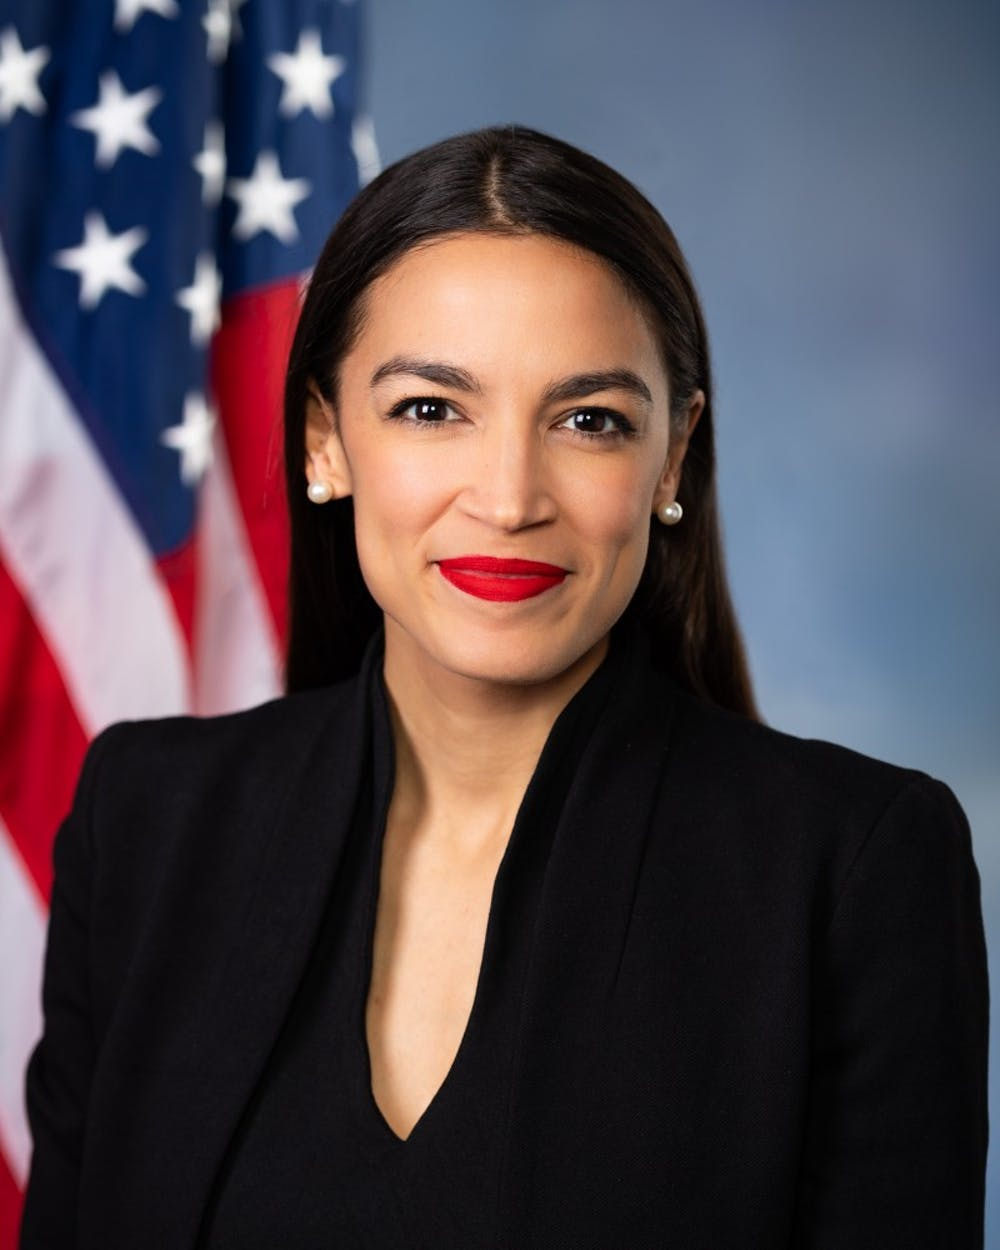 <p>If Ocasio-Cortez and her supporters want to imitate the Nordic welfare model, then so be it, but they shouldn't slander it by calling it socialism when it's not.</p>